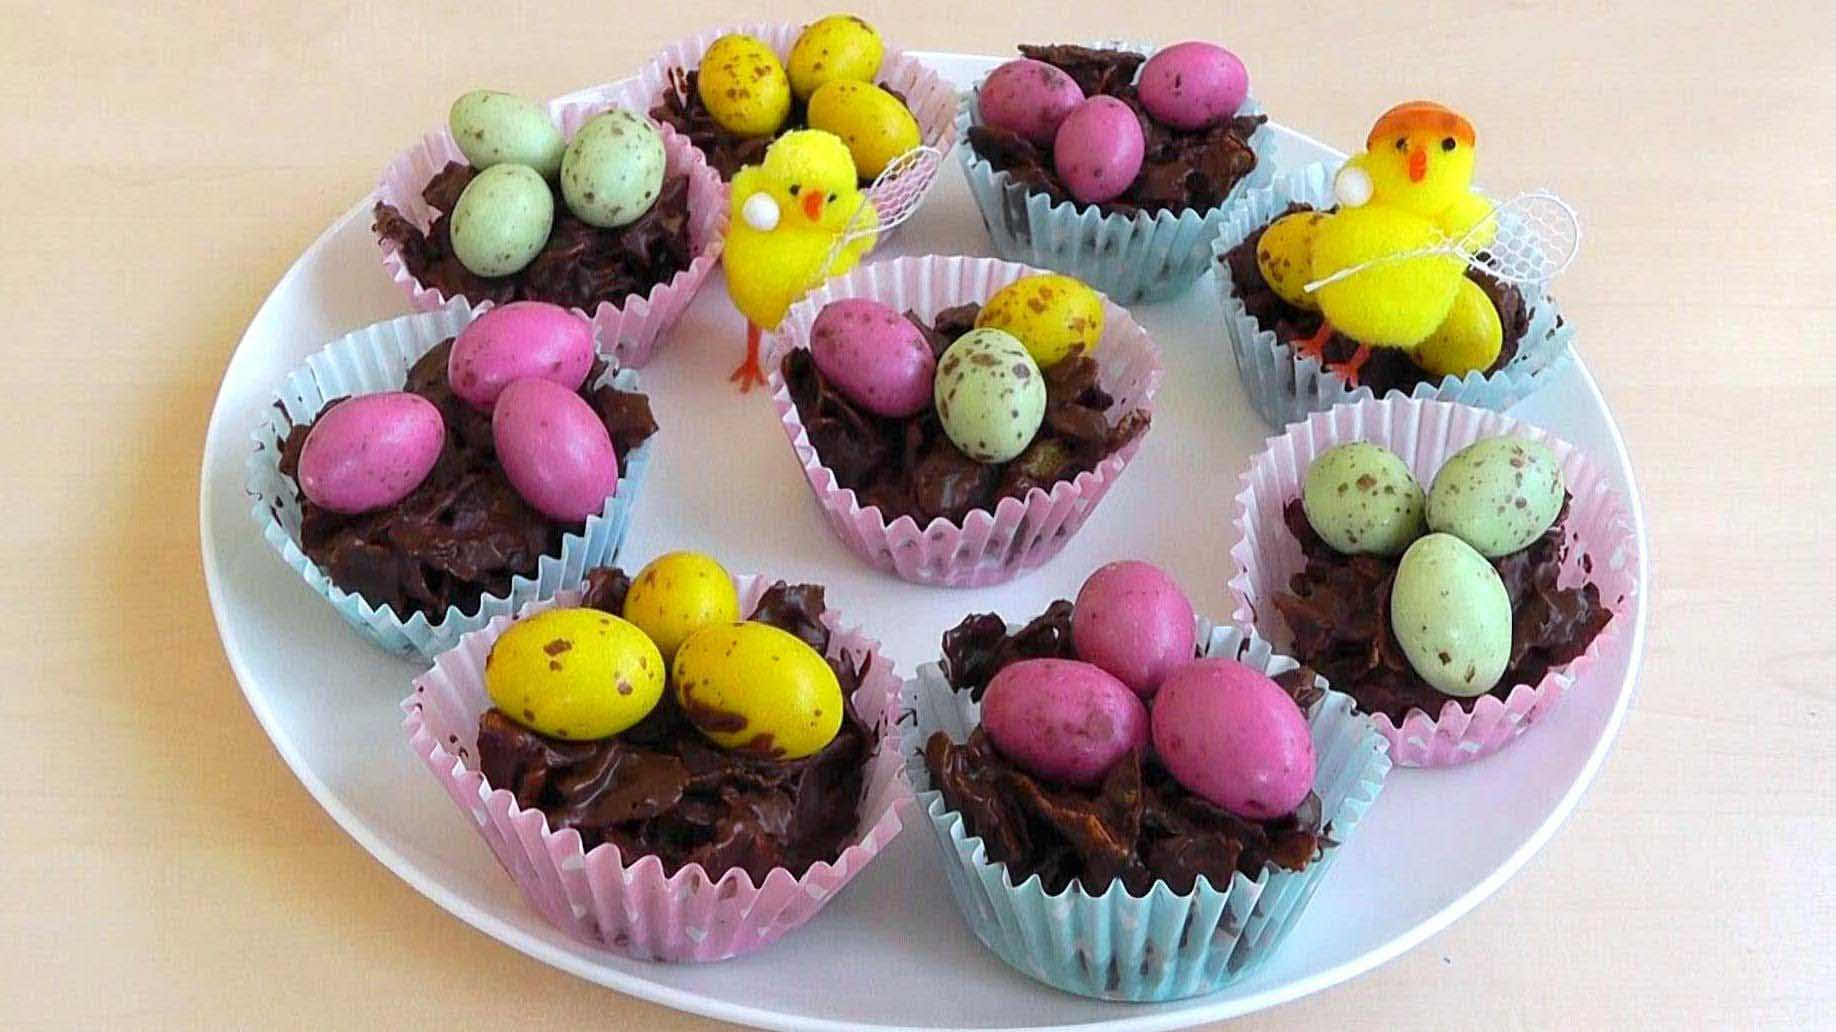 Easter Chocolate Cornflakes Cake